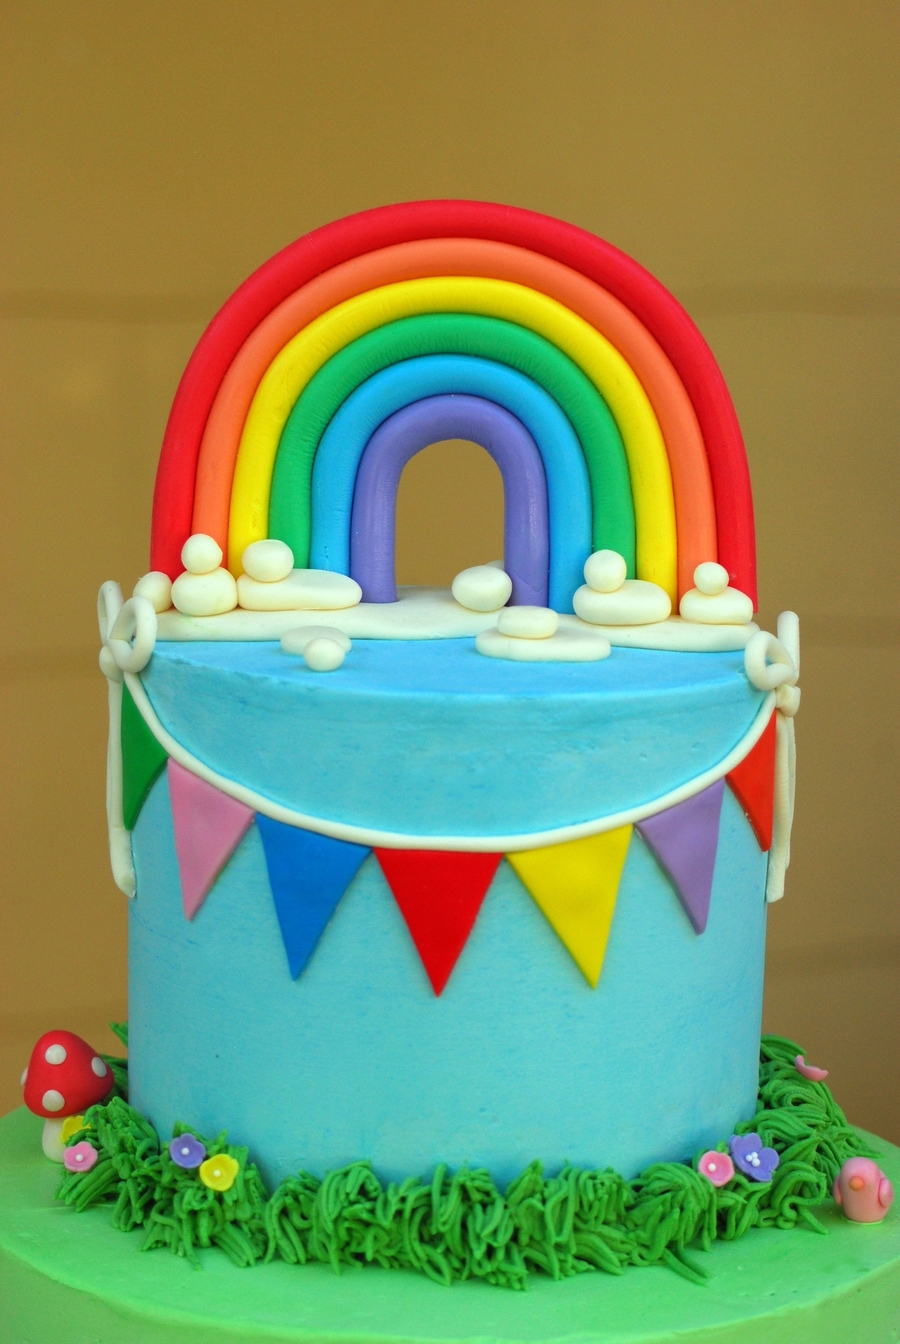 Rainbow Baby Shower Cake - CakeCentral.com